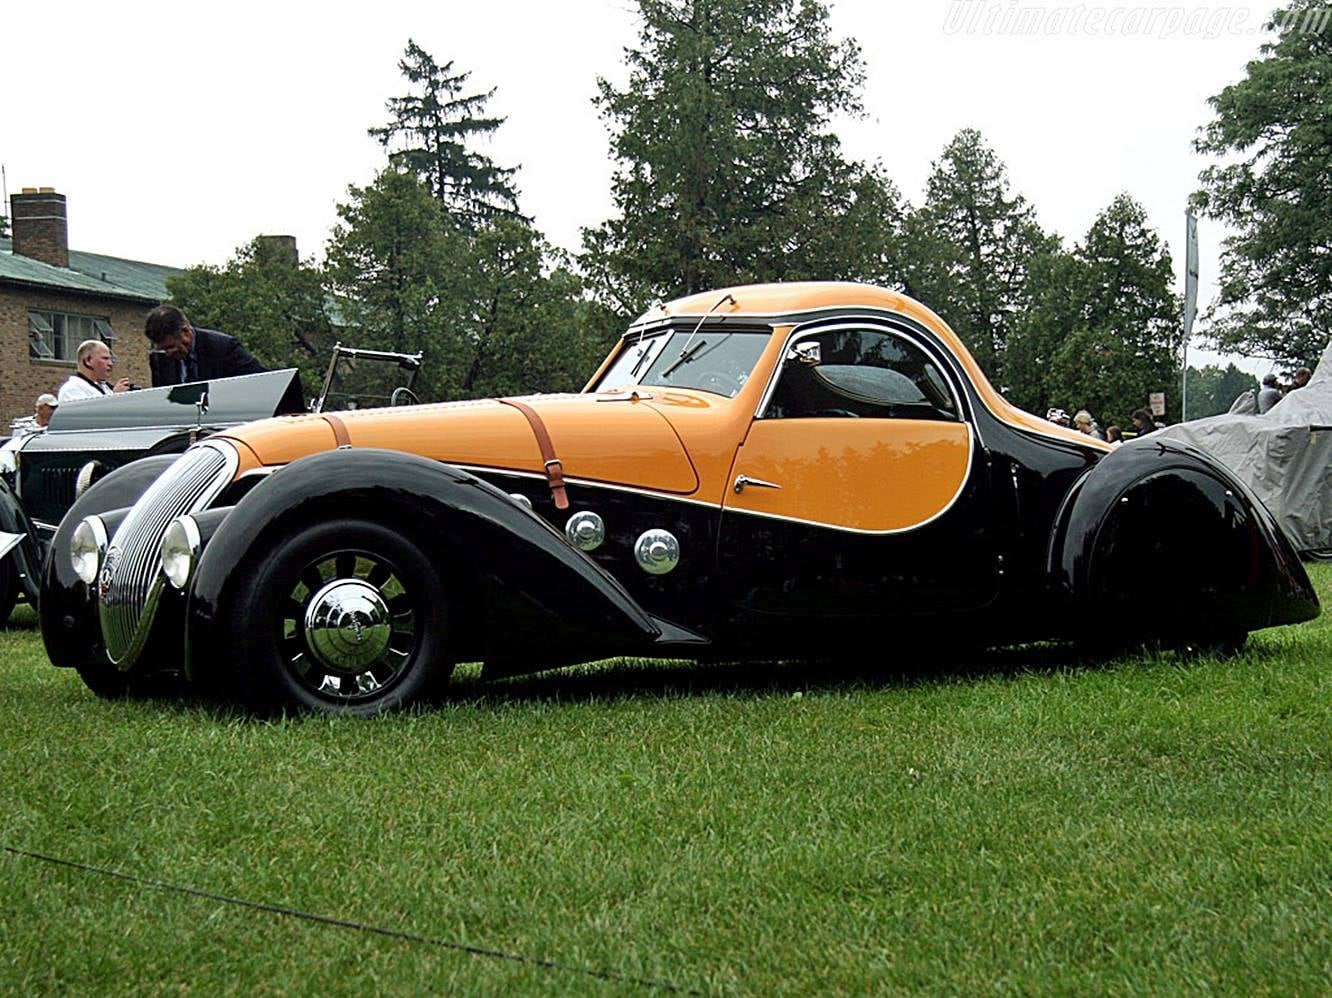 Peugeot-402-Coupe-1937-speed-racing-6-gebouwd-4-cyl-70-PK-(1)